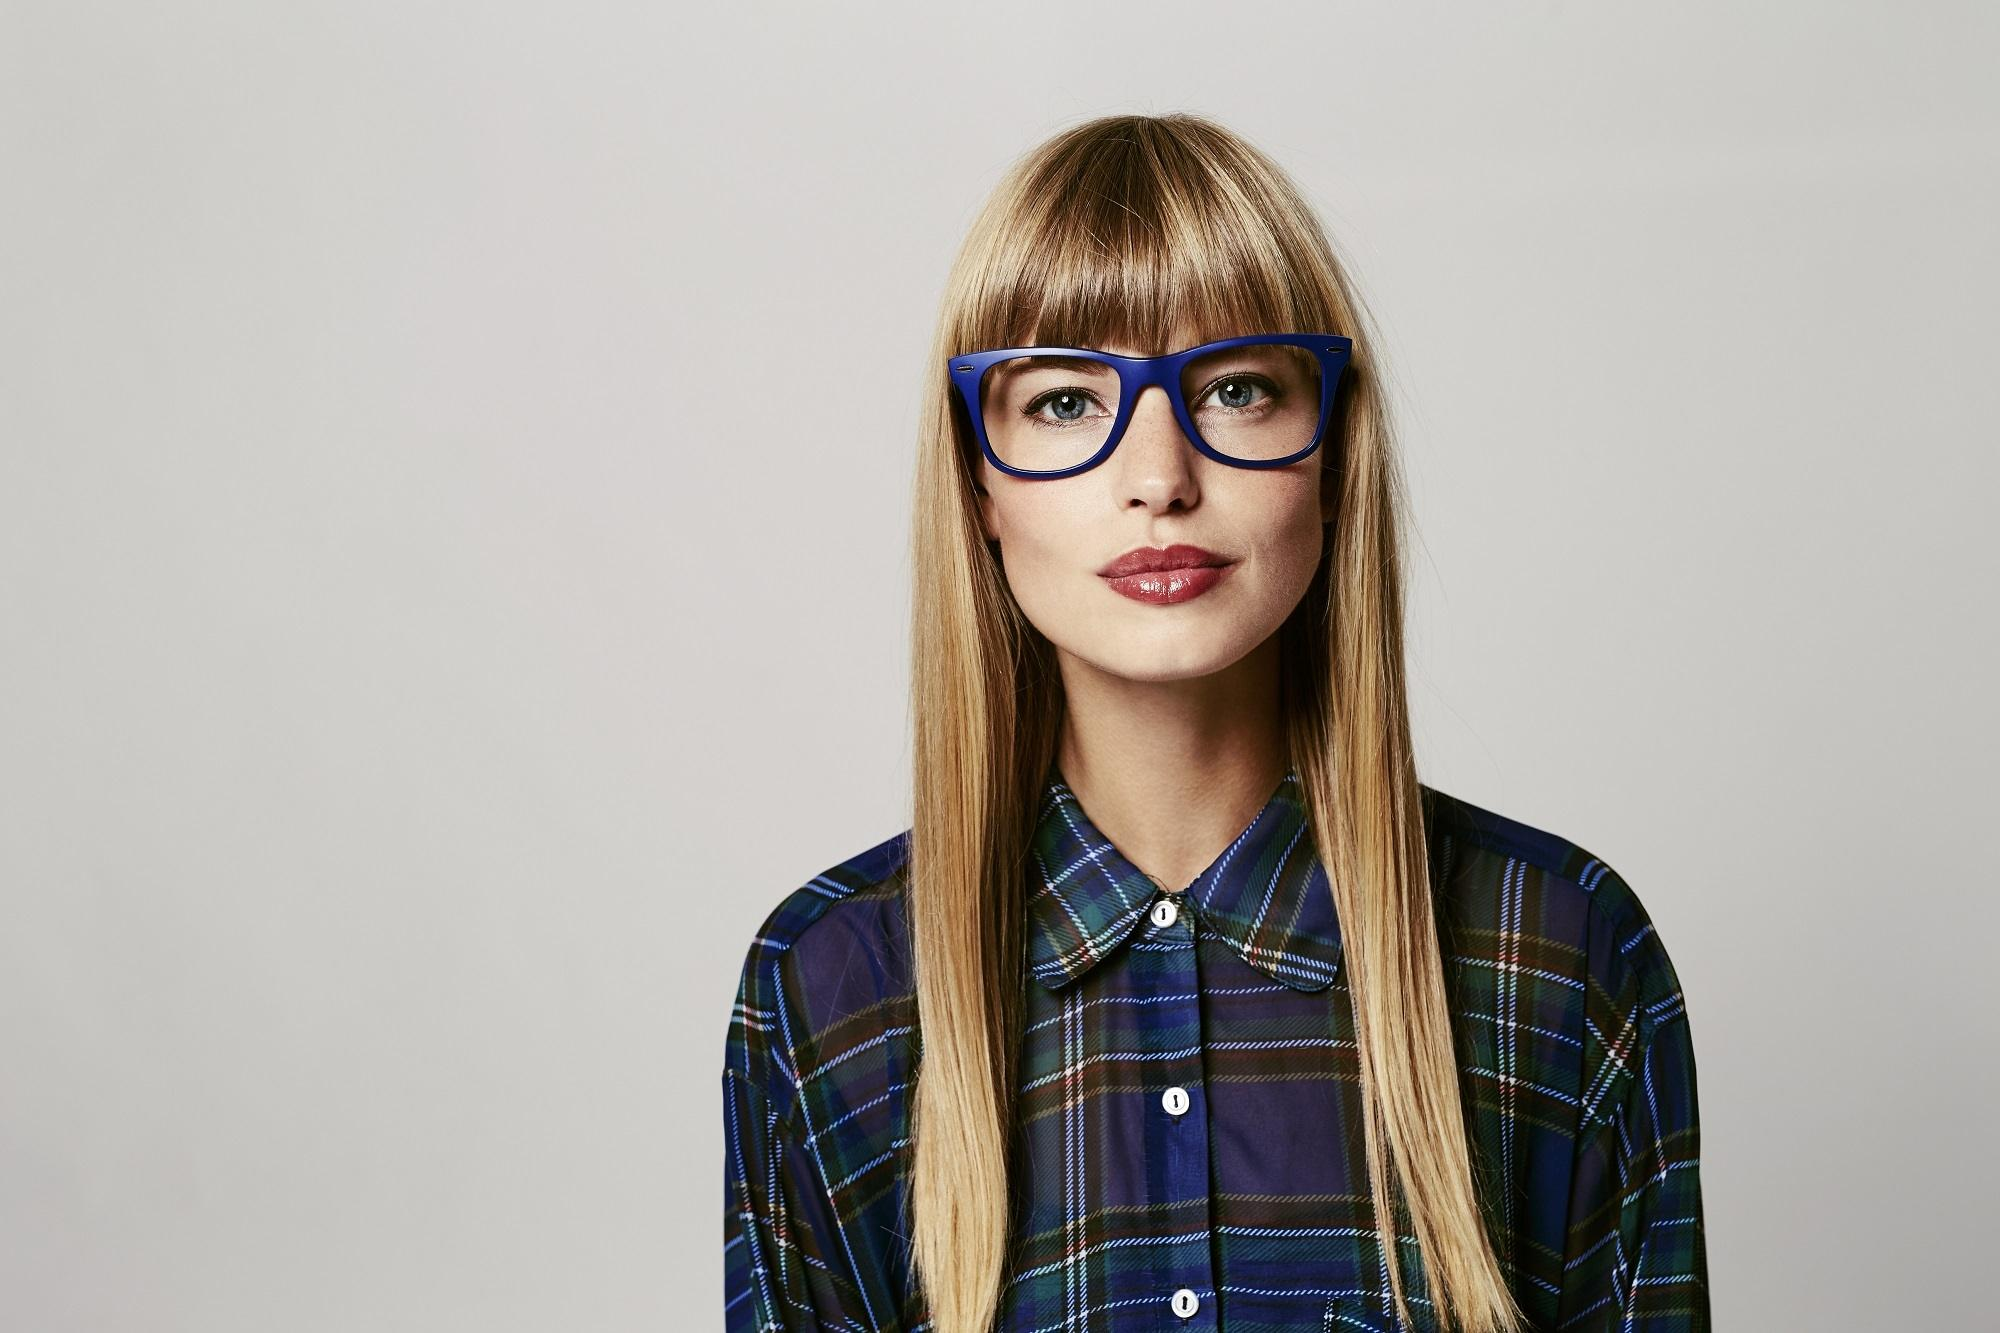 Girl with blunt bangs: Hairstyles for glasses wearers